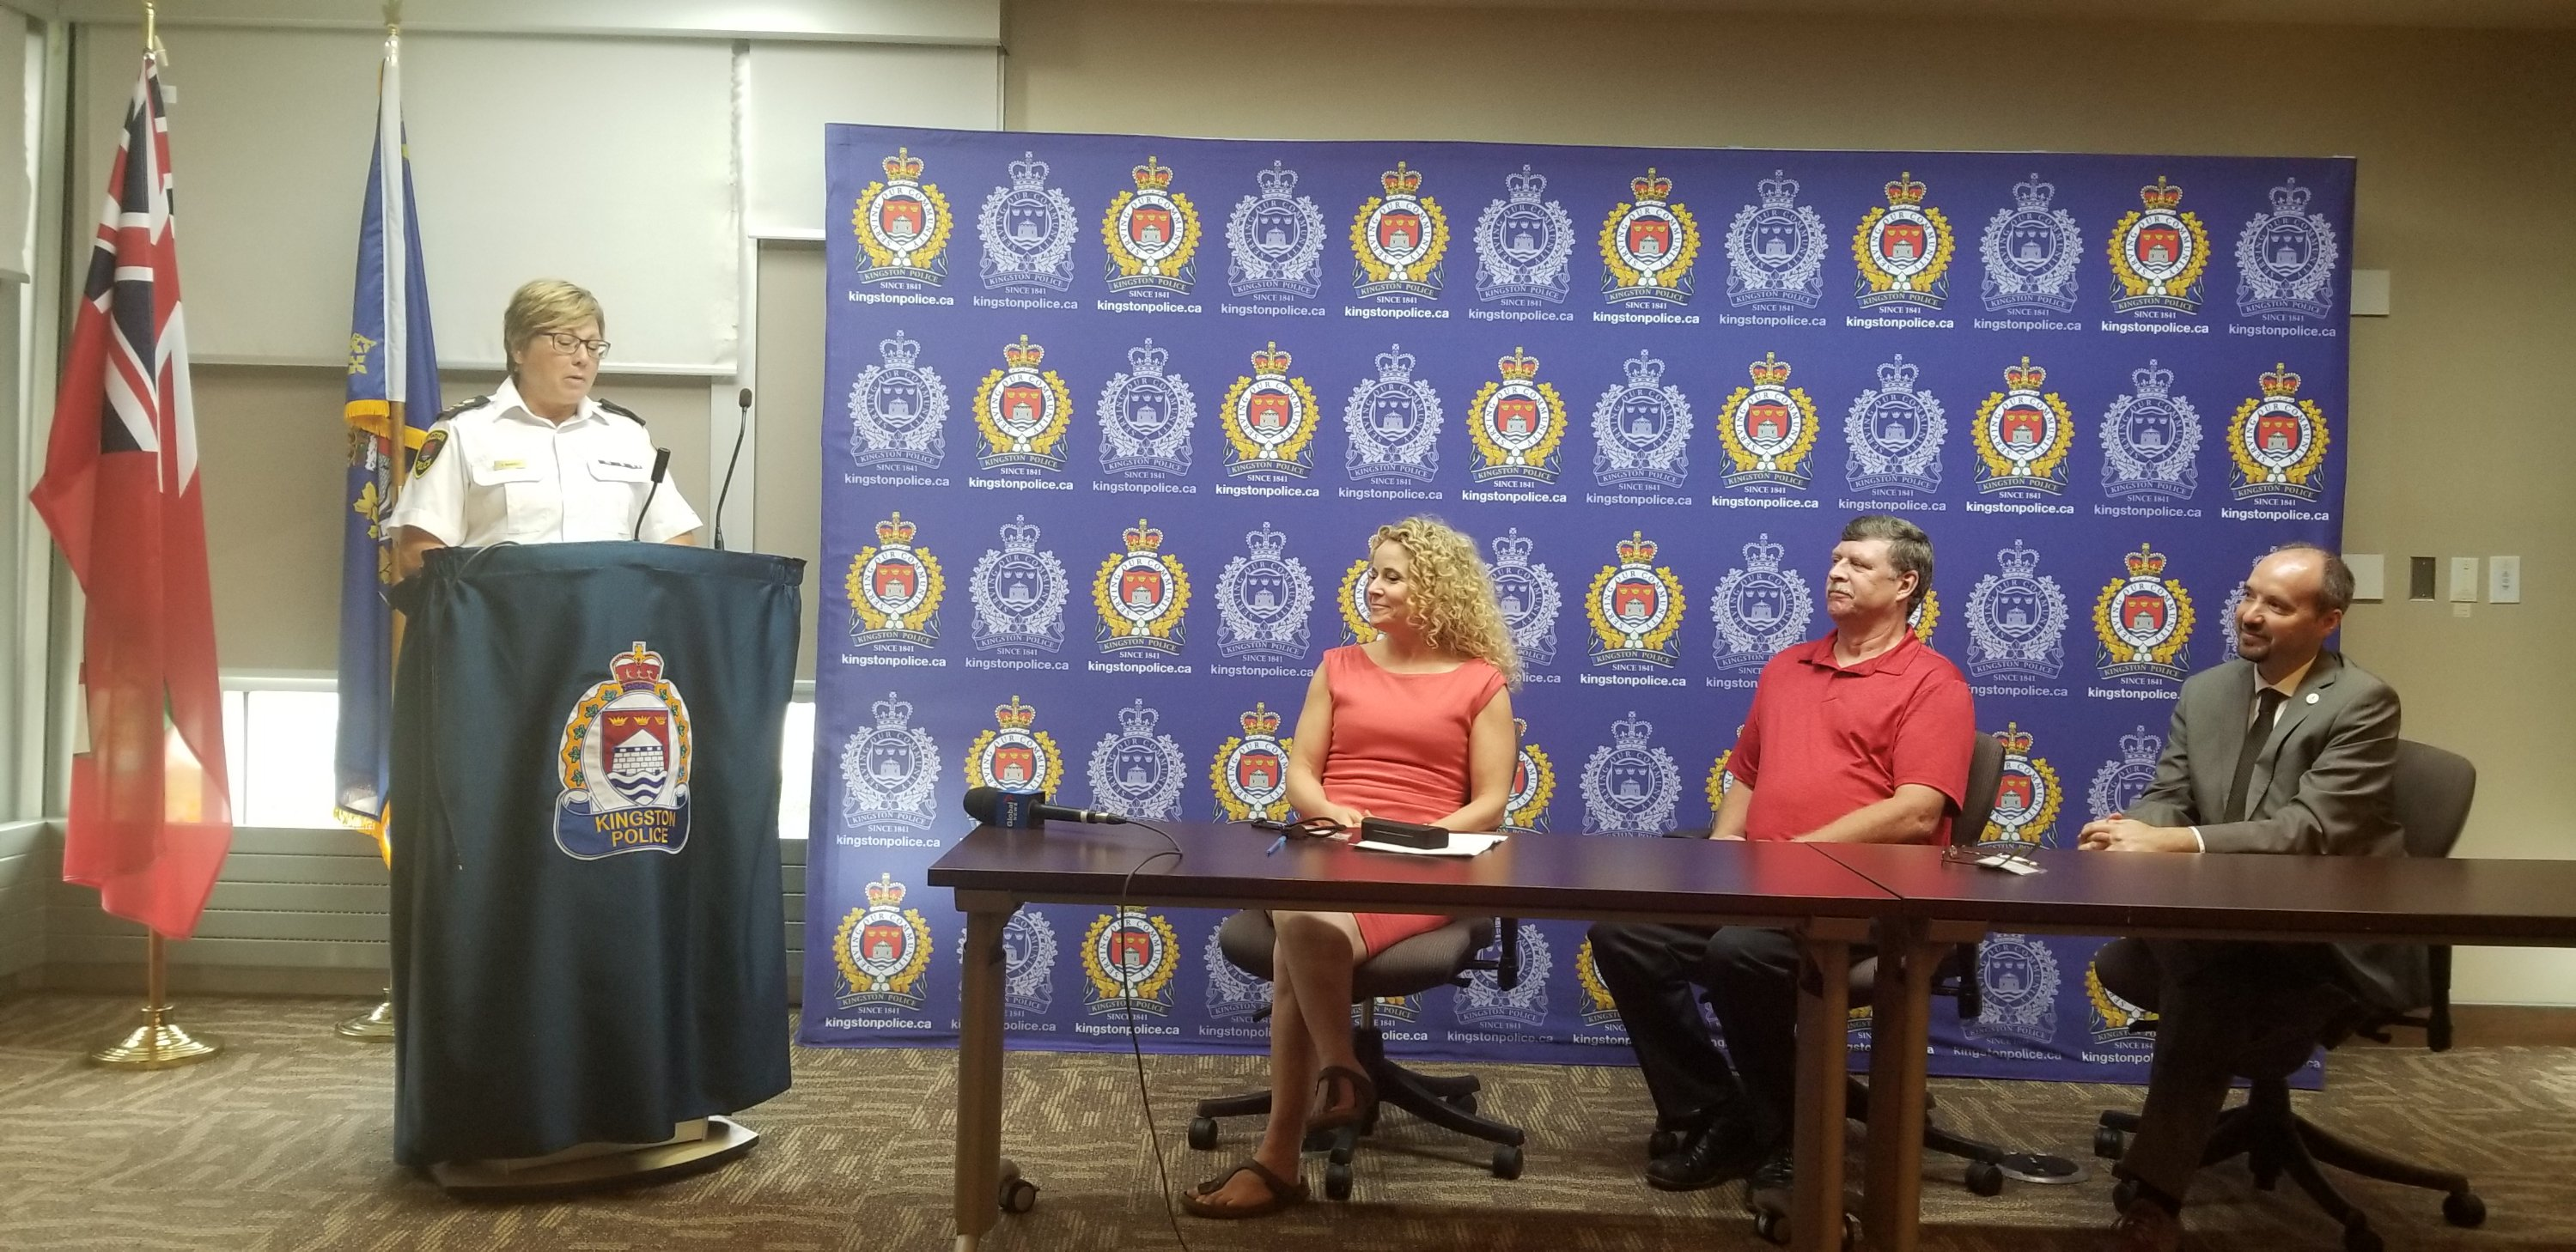 Chief-designate Antje McNeely speaks following announcement she will be Kingston Police's 17th Chief.